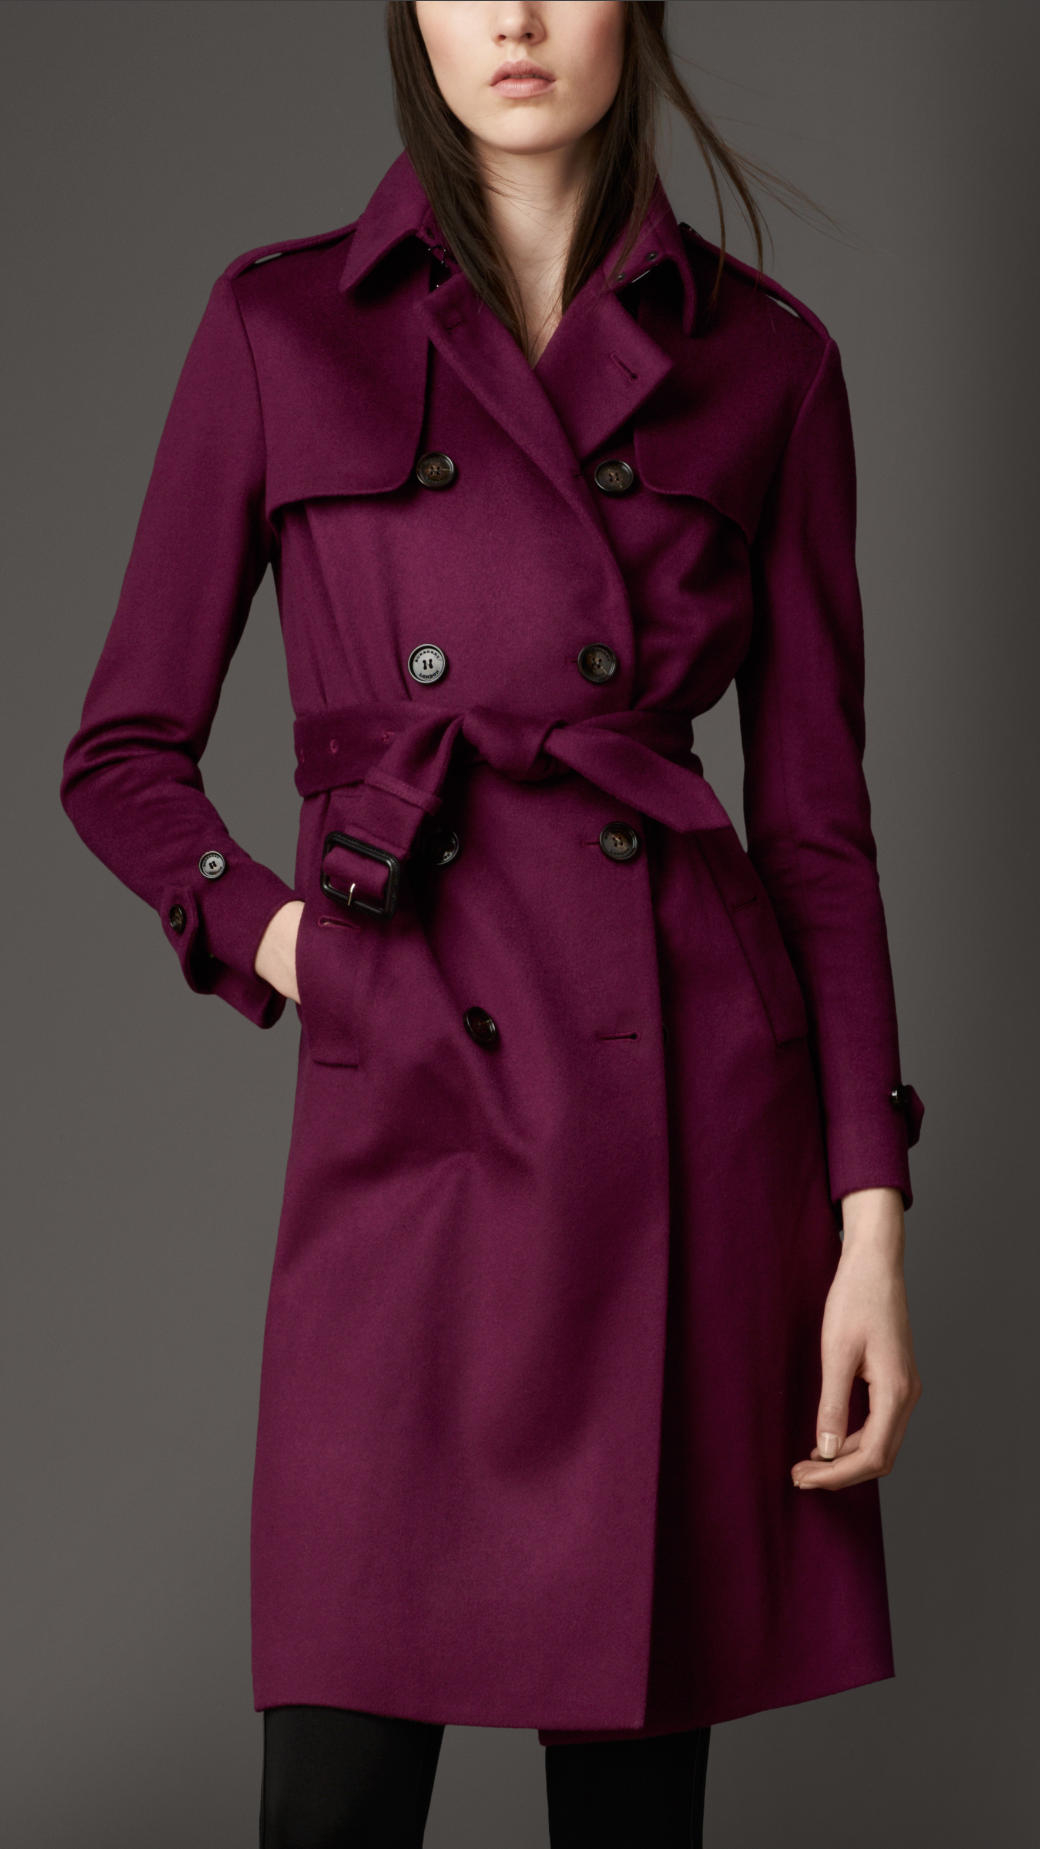 burberry long double cashmere trench coat in purple dark. Black Bedroom Furniture Sets. Home Design Ideas